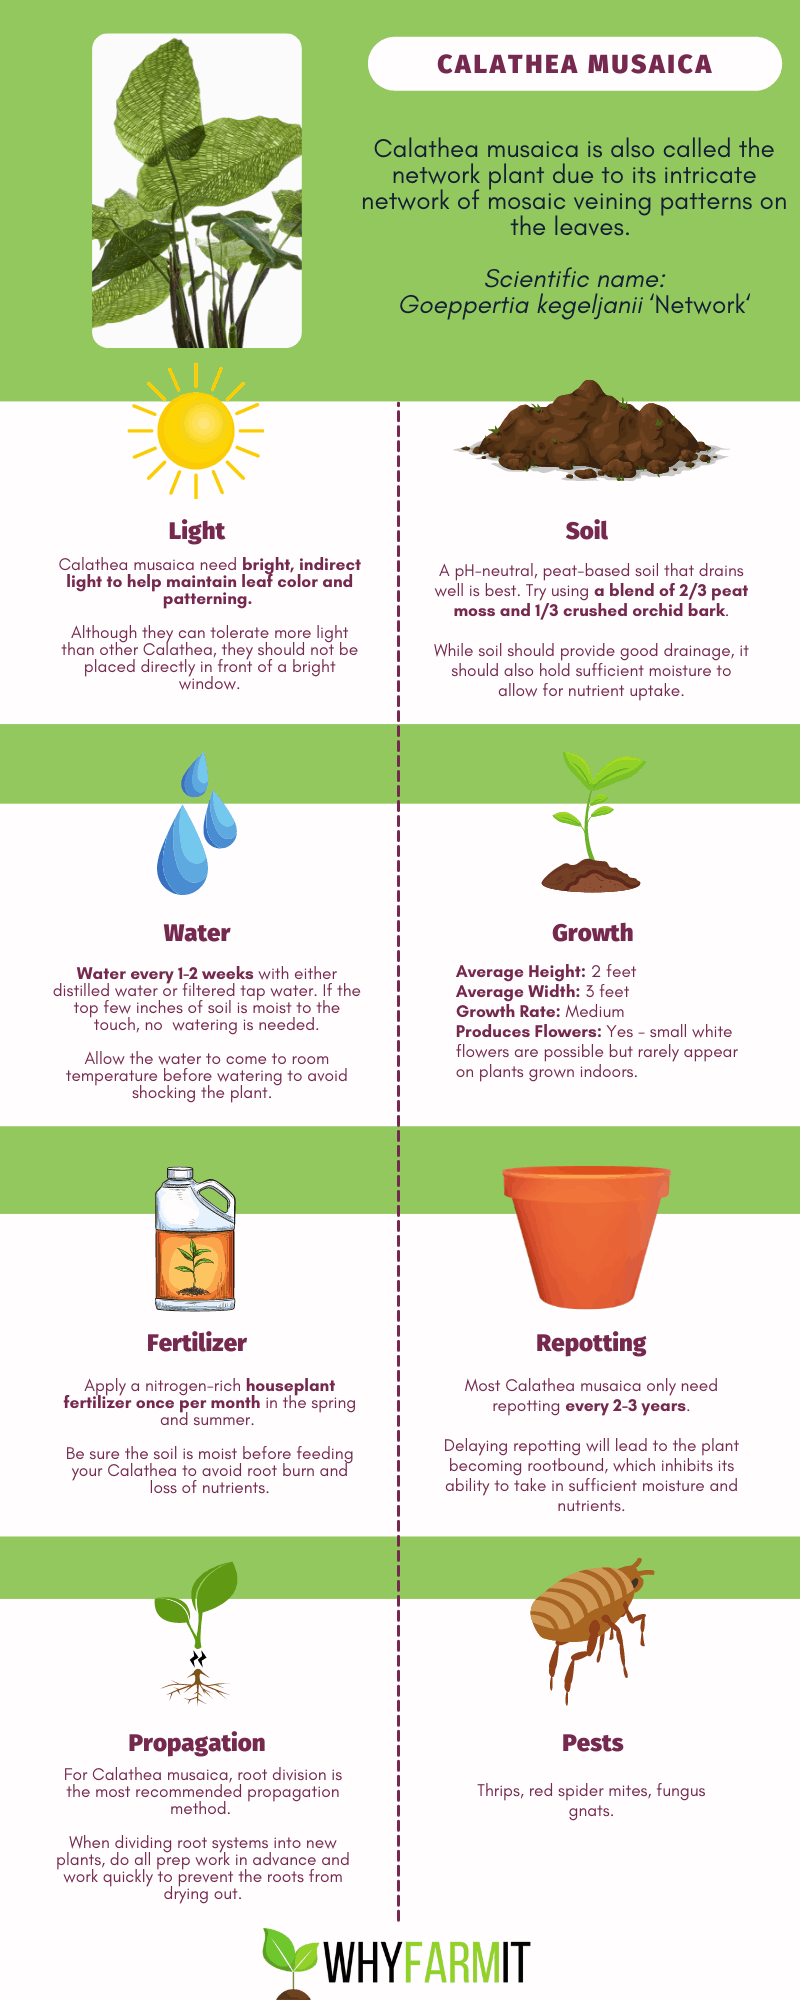 Infographic outlining care for Calathea musaica